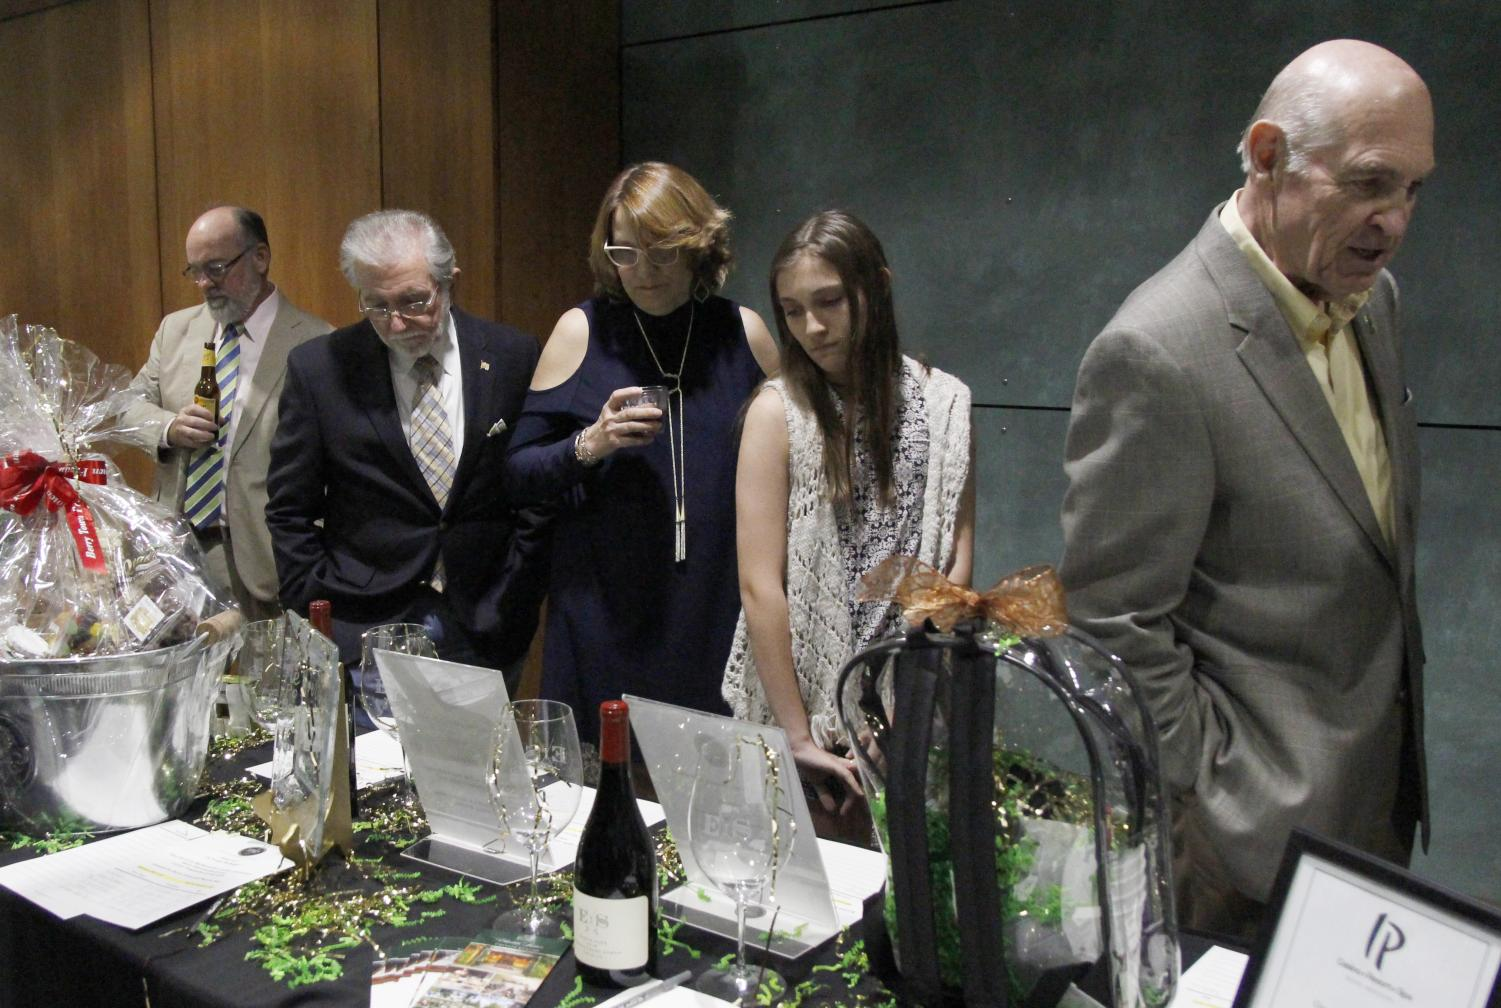 In addition to food, people can enjoy auctions at the annual